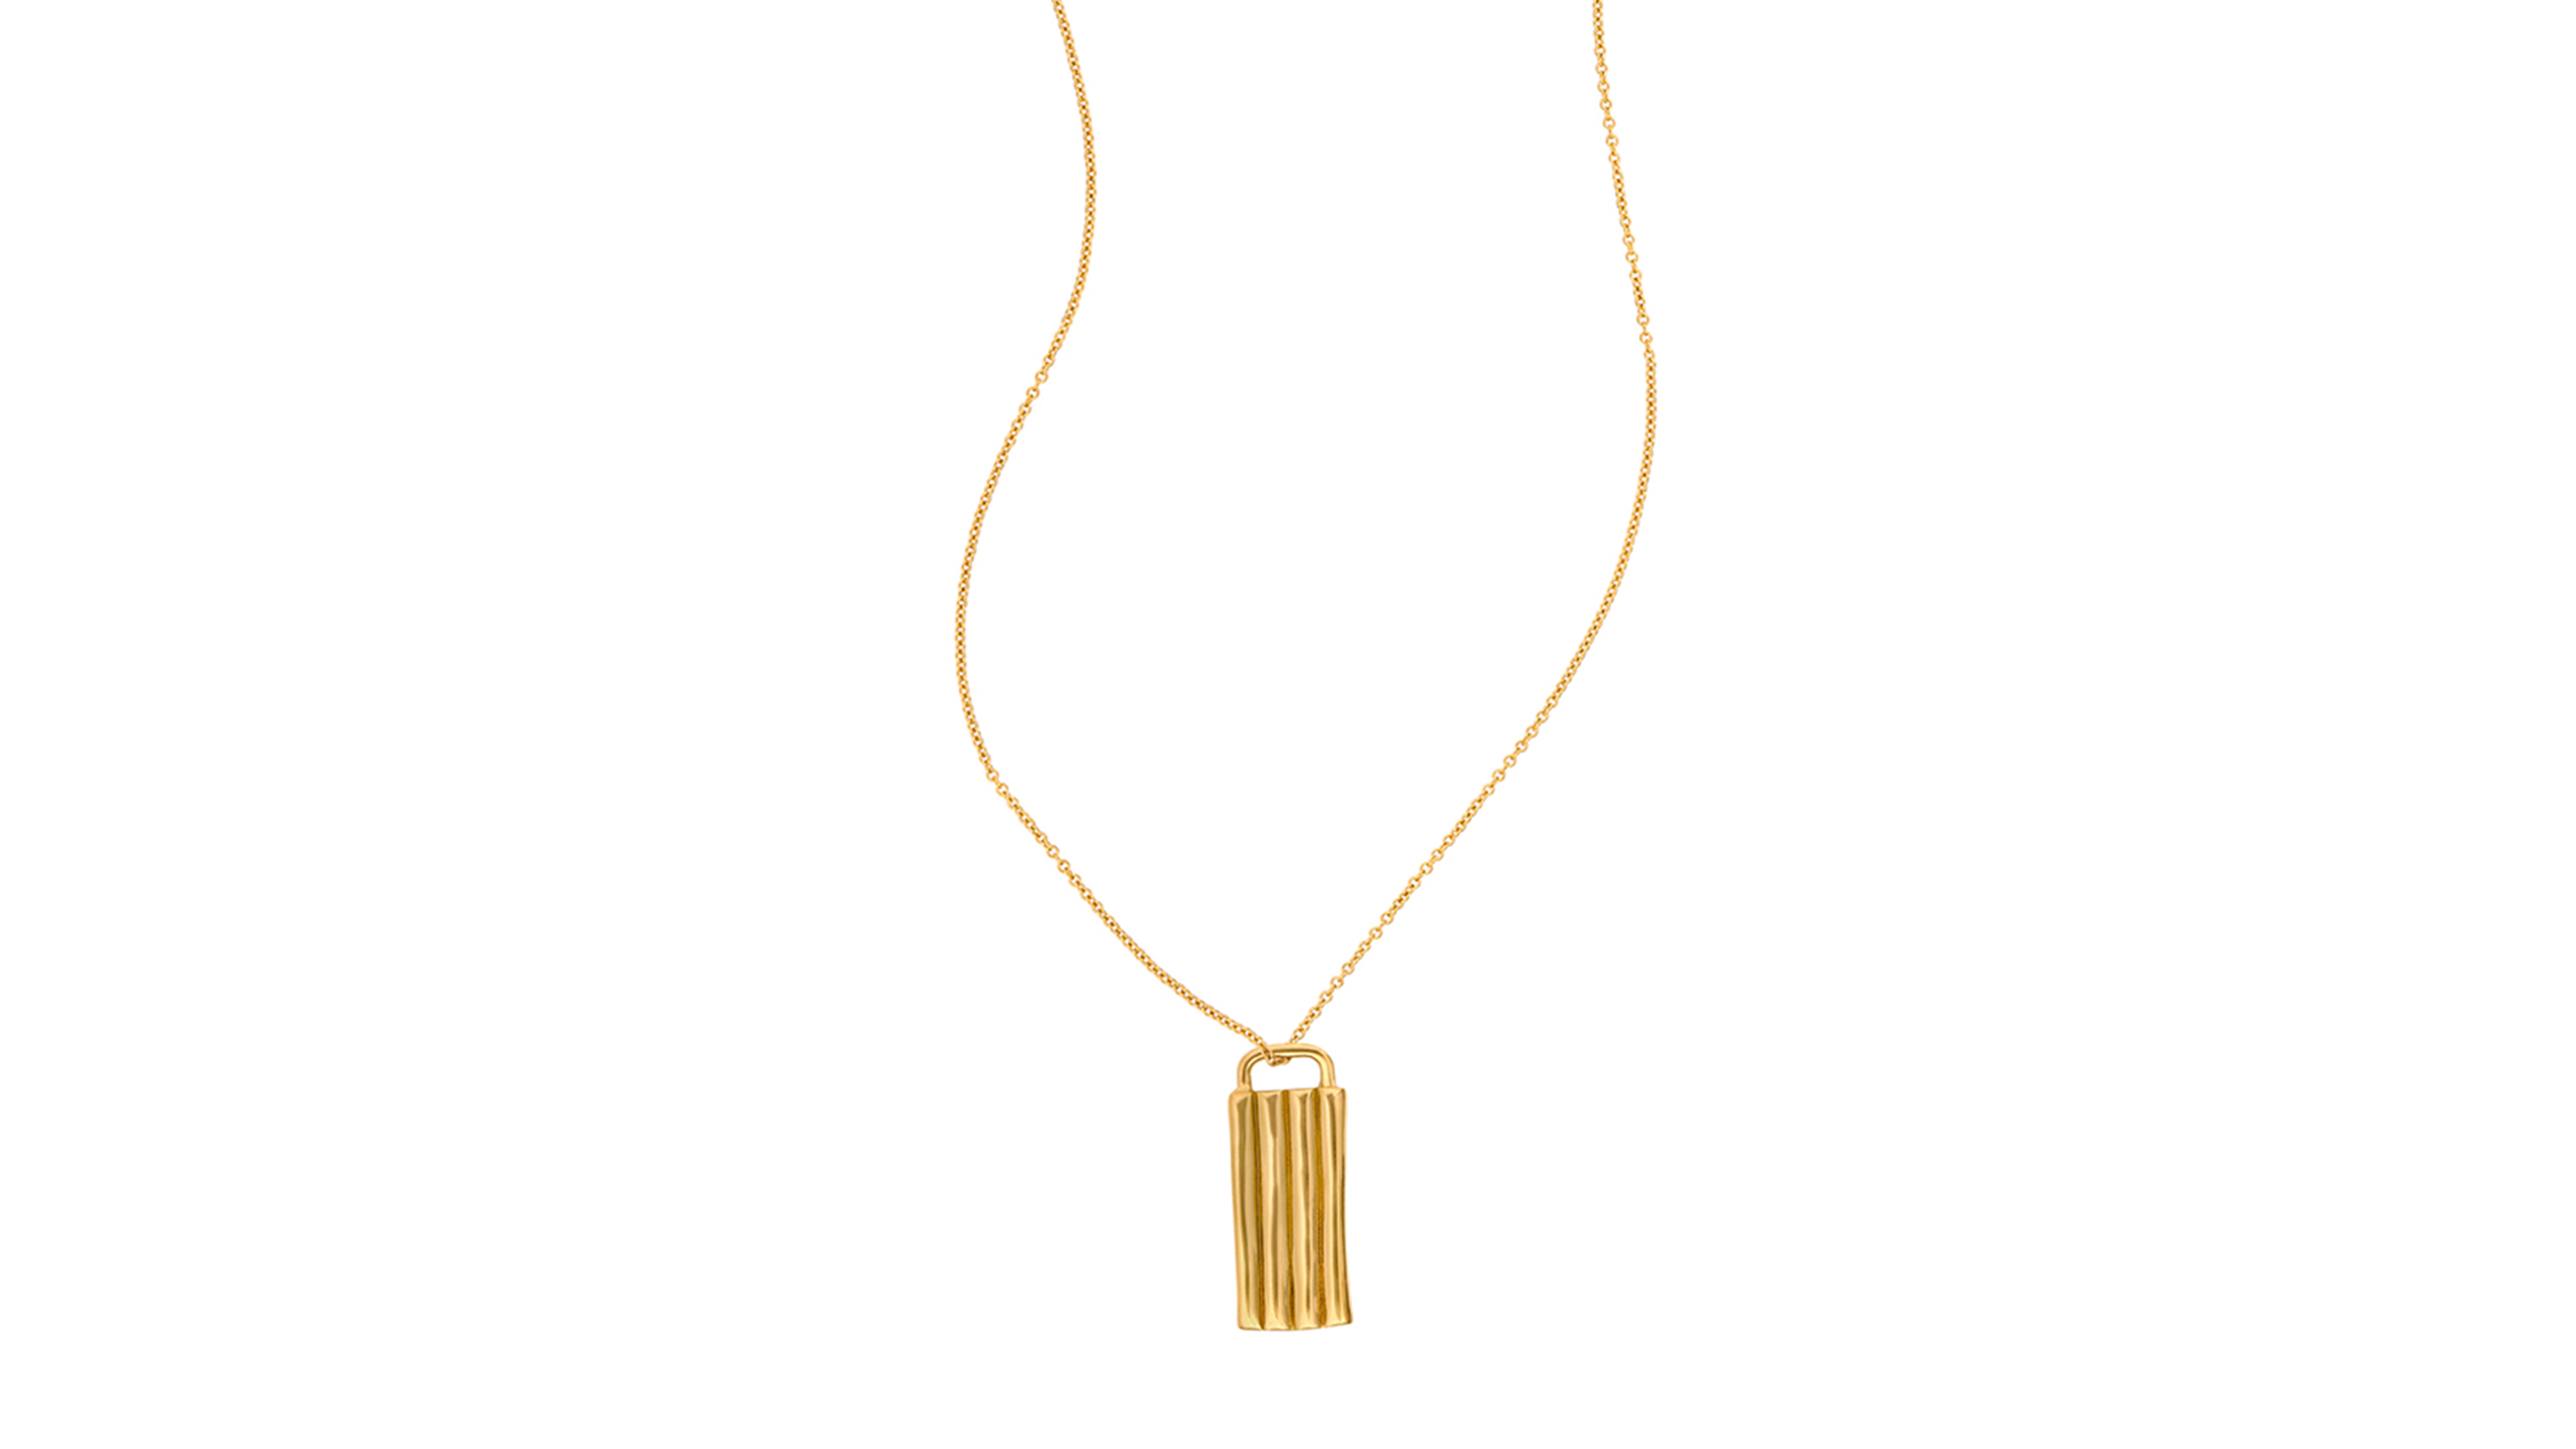 Necklace by Bar Jewellery